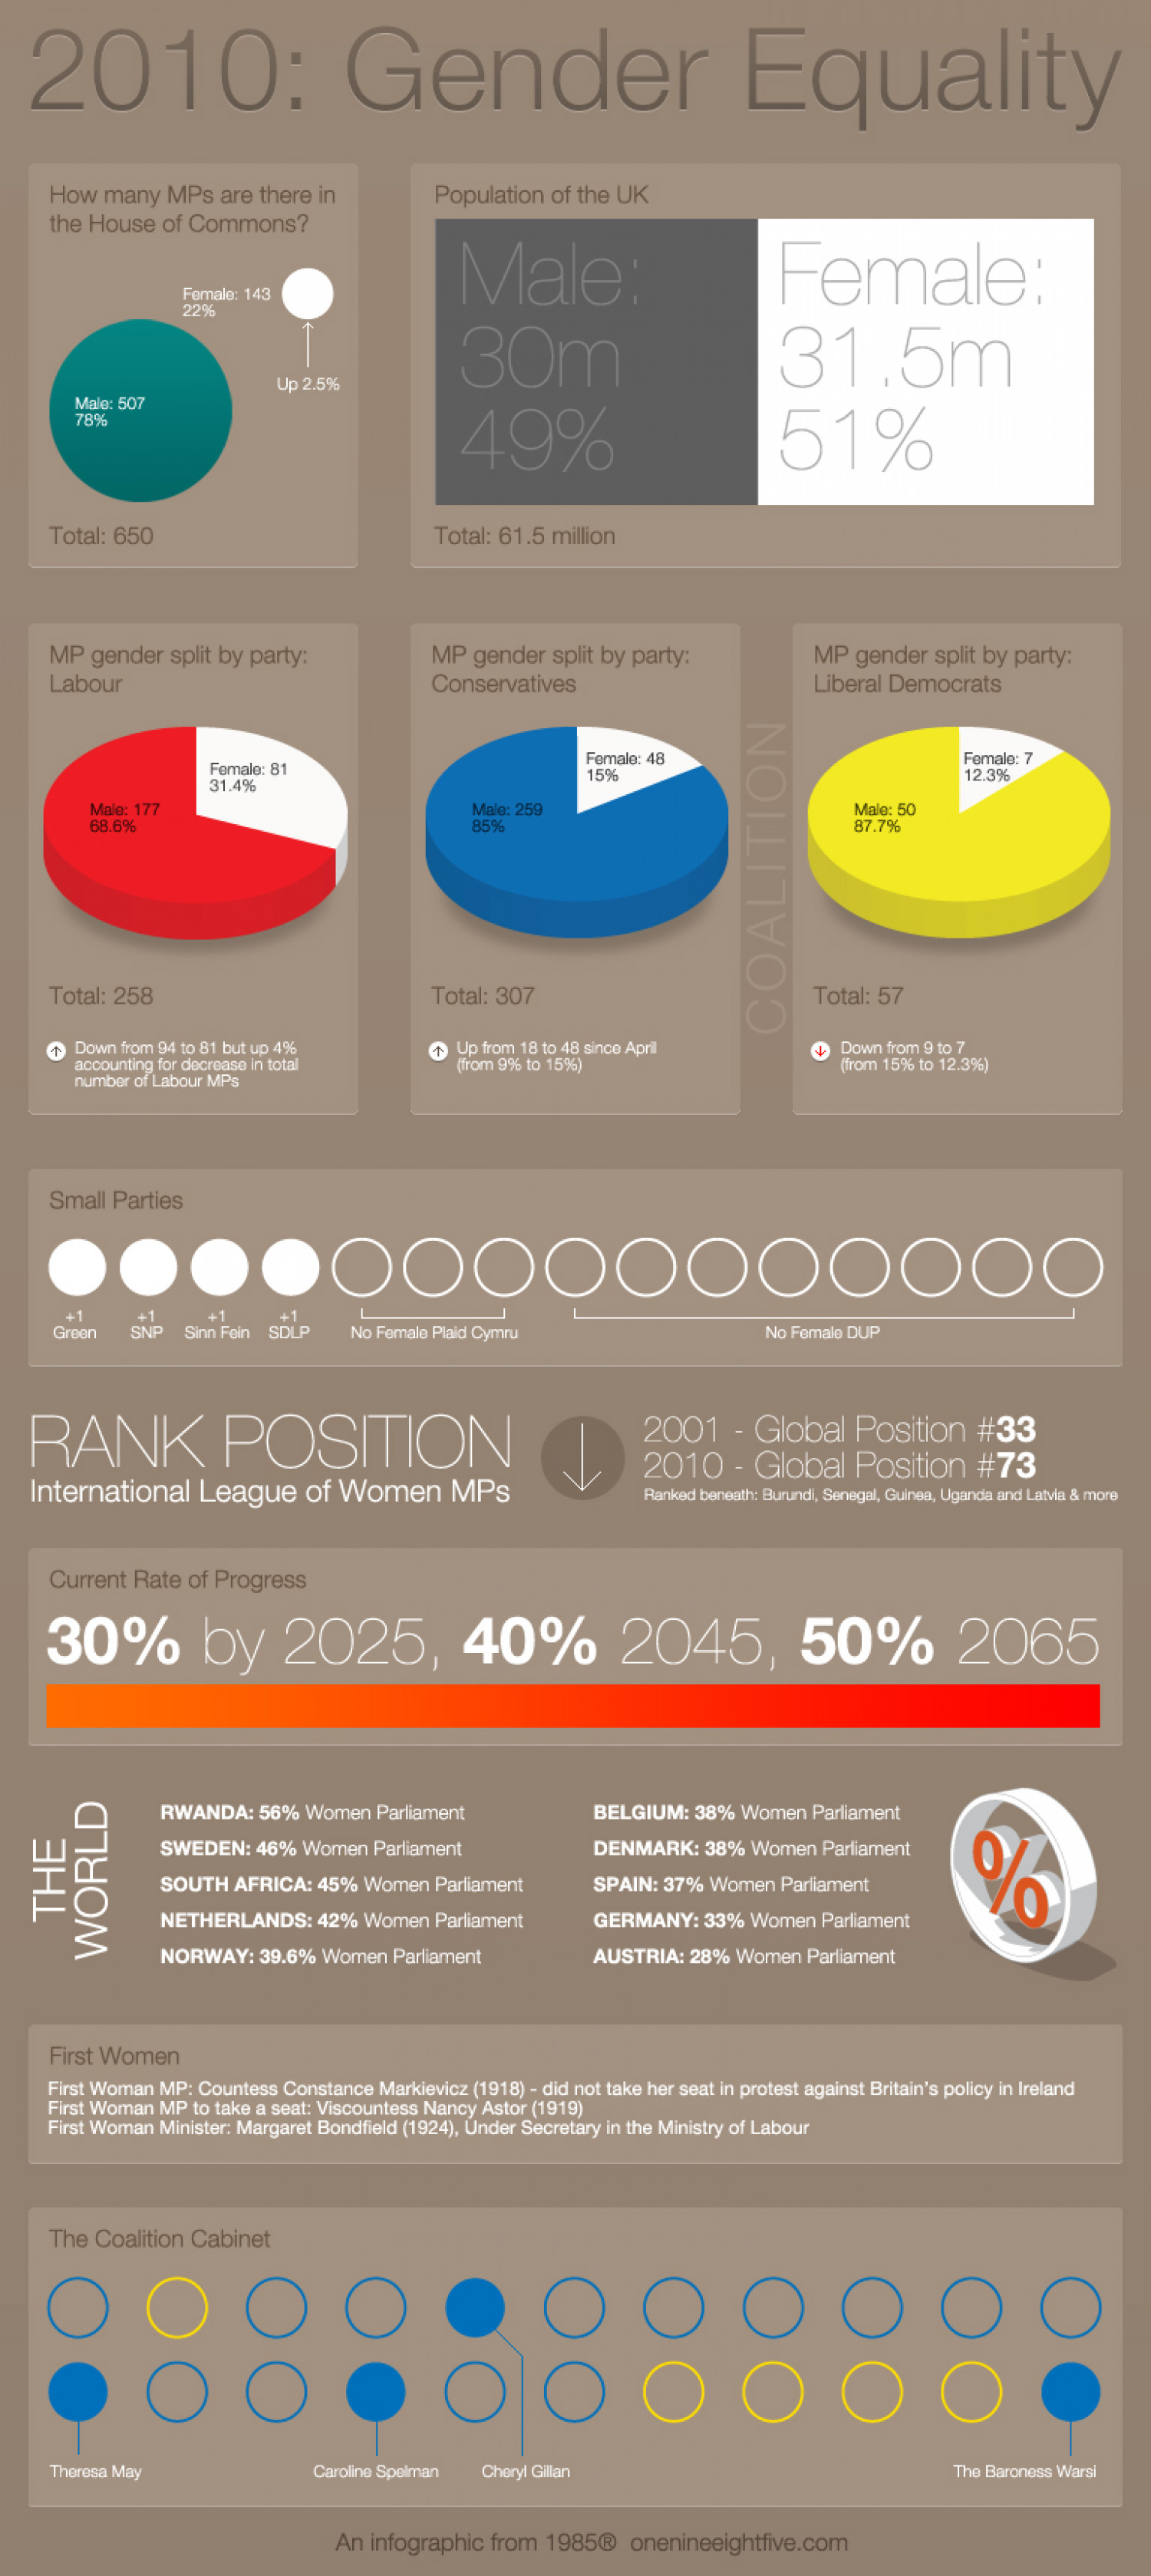 2010 Gender Equality Infographic